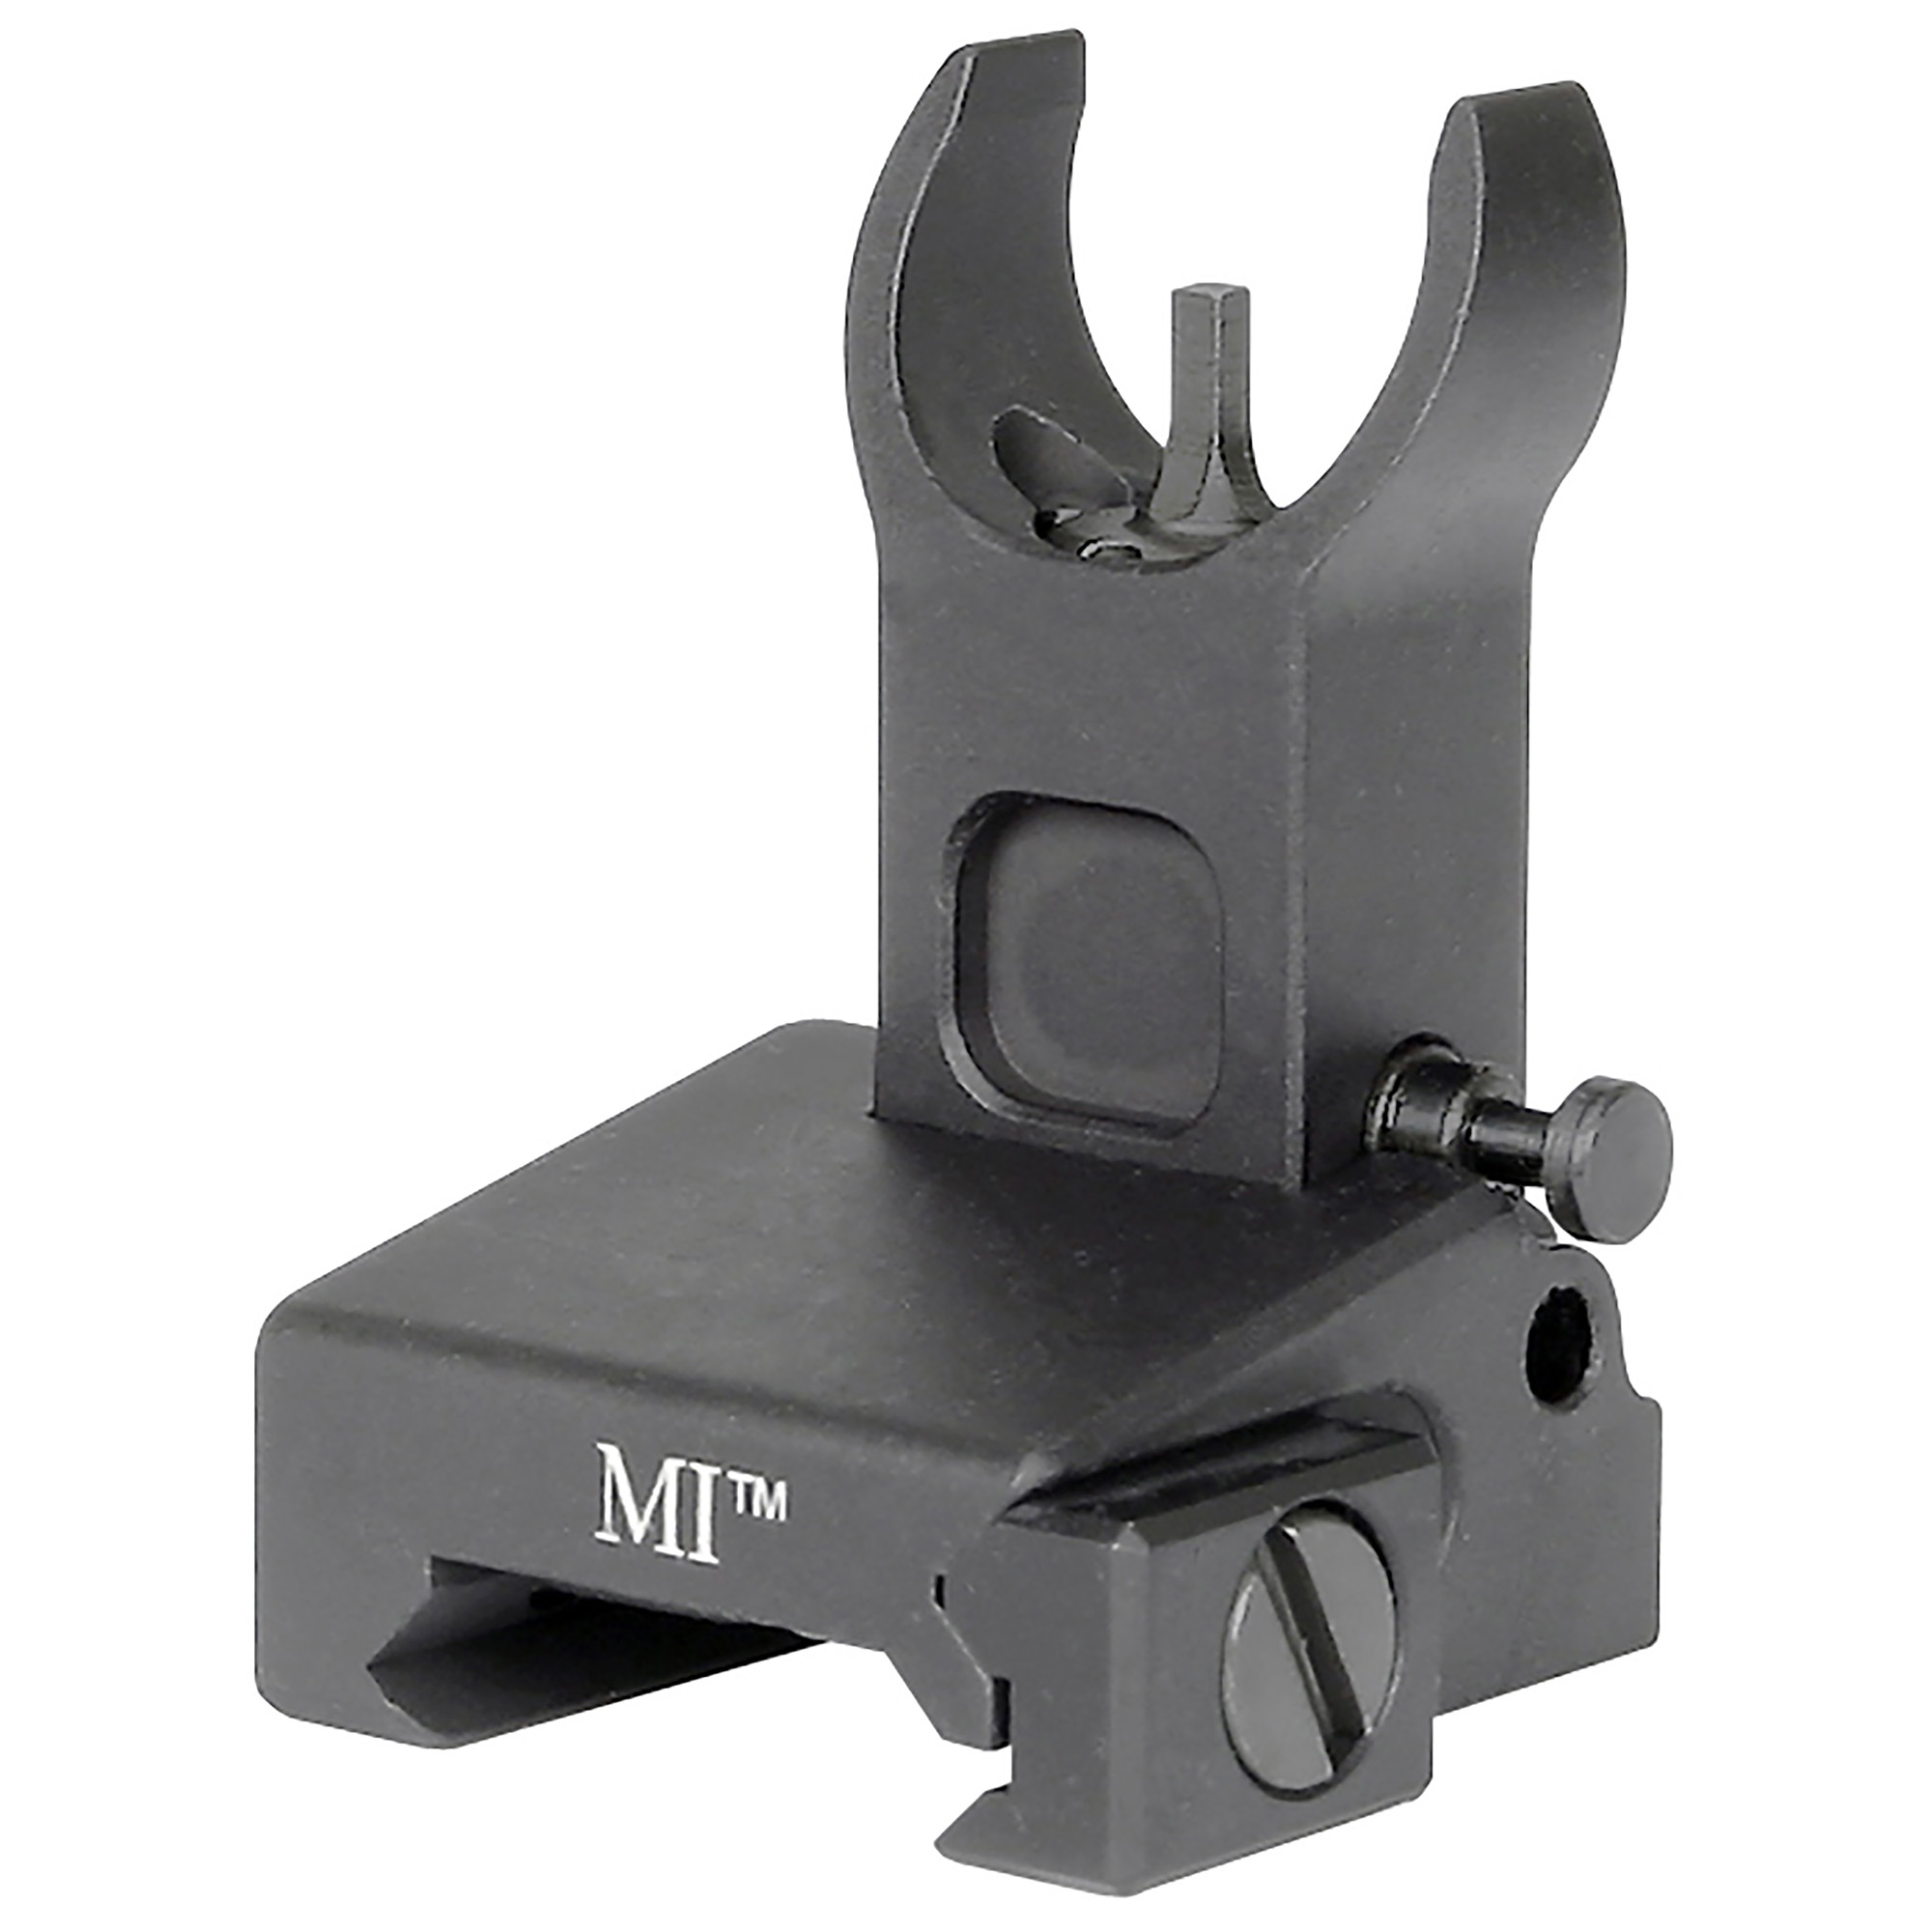 "Midwest Industries have been making some of the most sought after"" durable"" and innovative firearm parts for a number of years. The use of high quality materials and innovative design made Midwest Industries a leader in the industry. Their AR-15 Low Profile Flip Up Front Sight has established itself as"